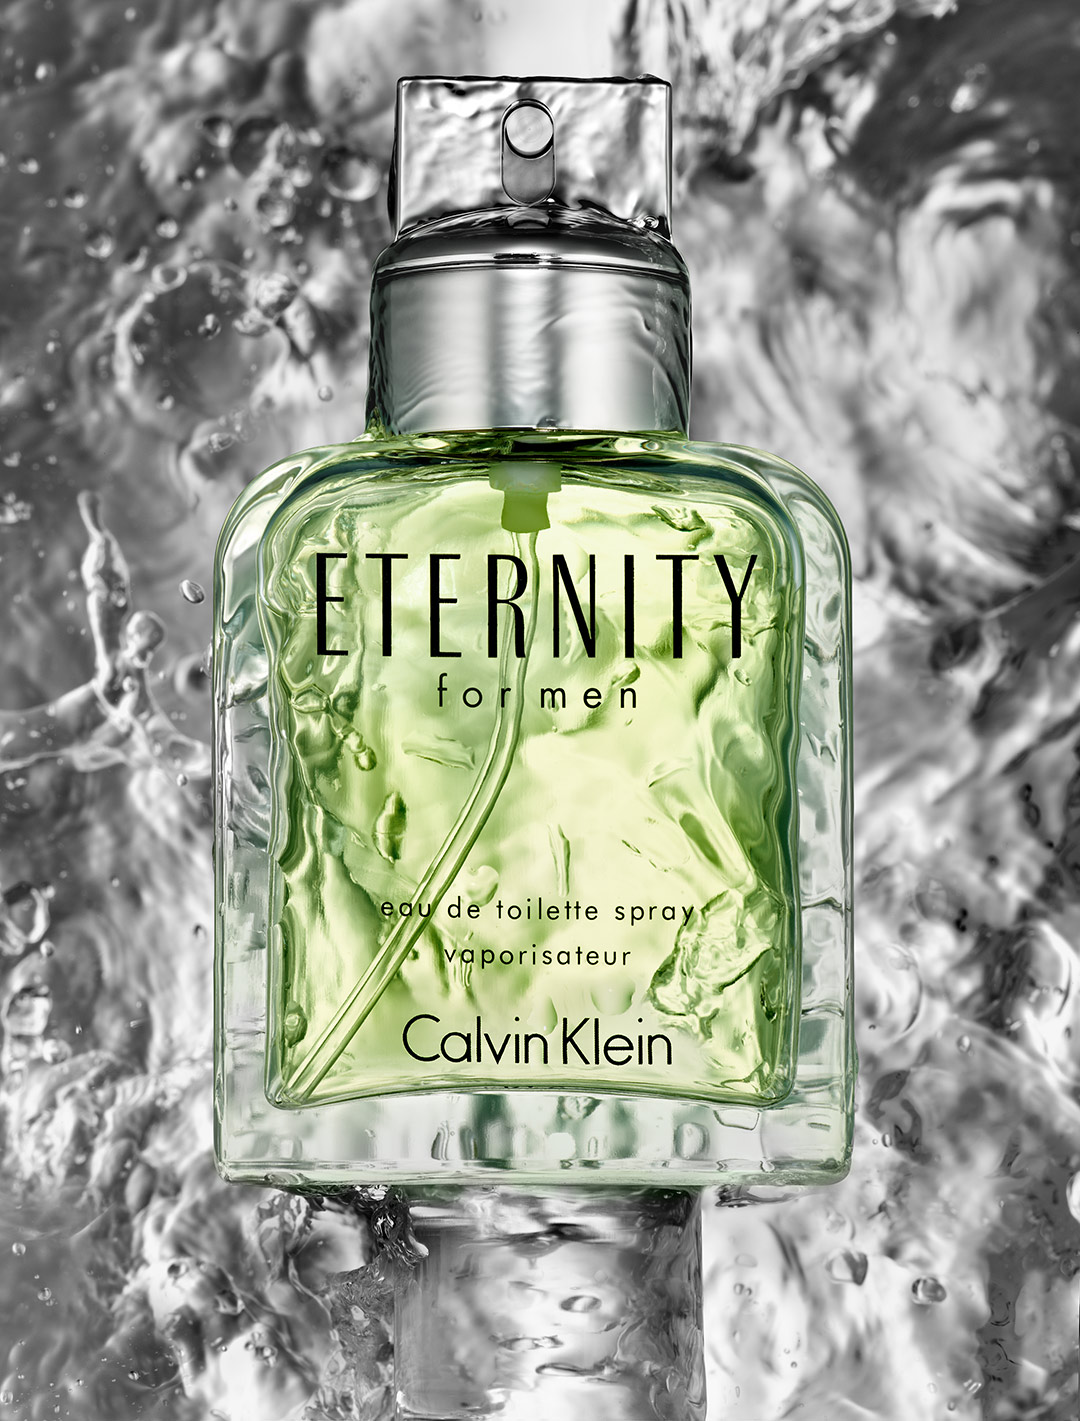 Eternity for Men Calvin Klein Eau de Toilette Spray